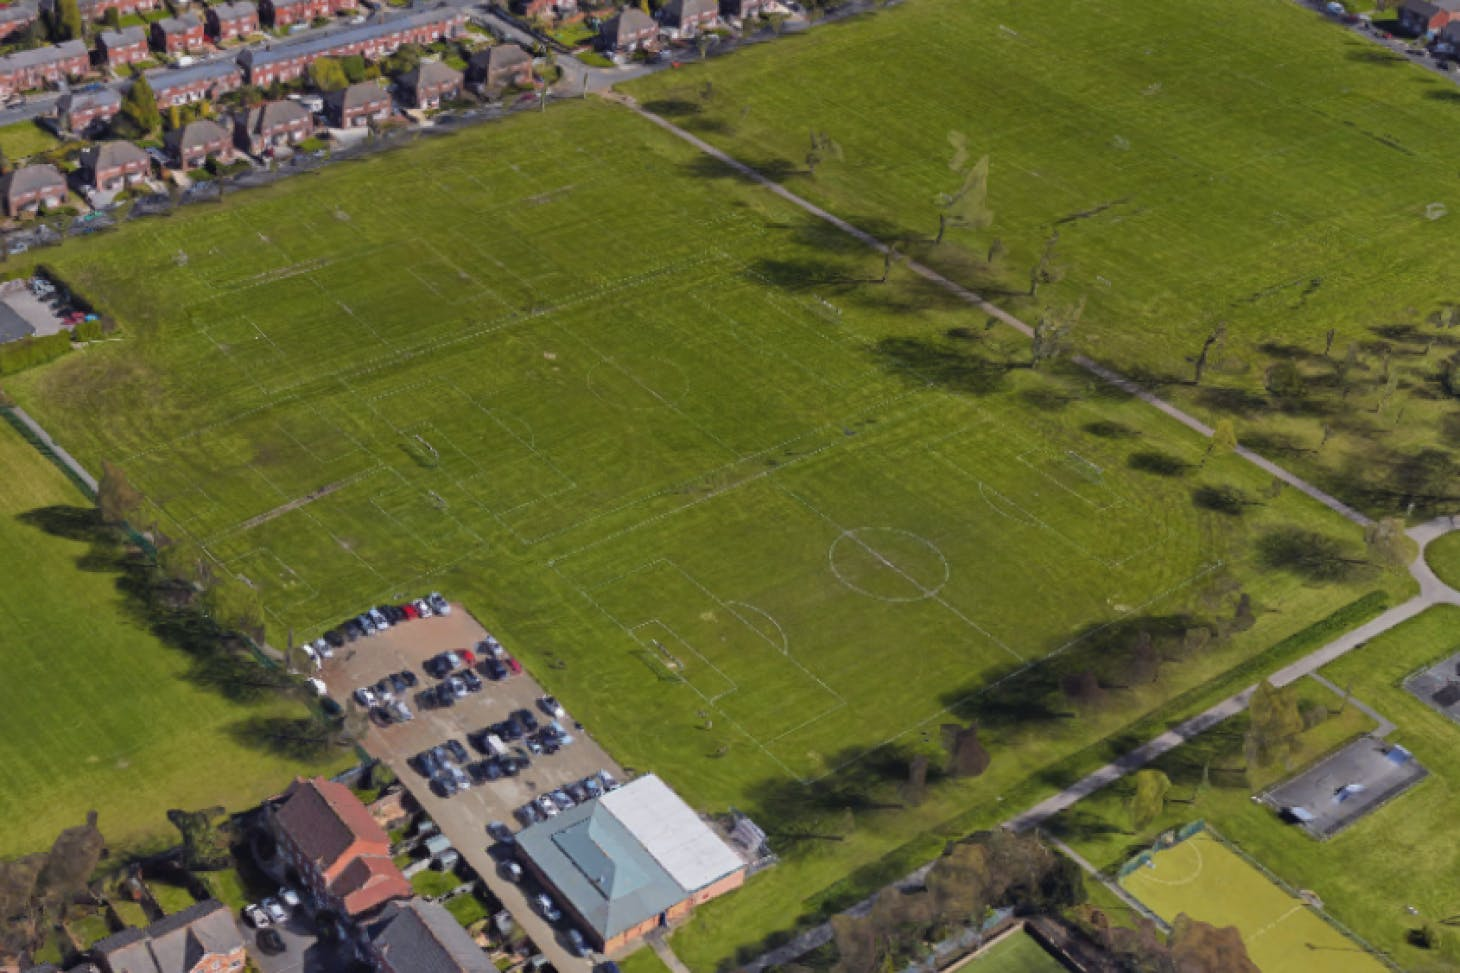 Beech Farm Playing Fields 11 a side | Grass football pitch